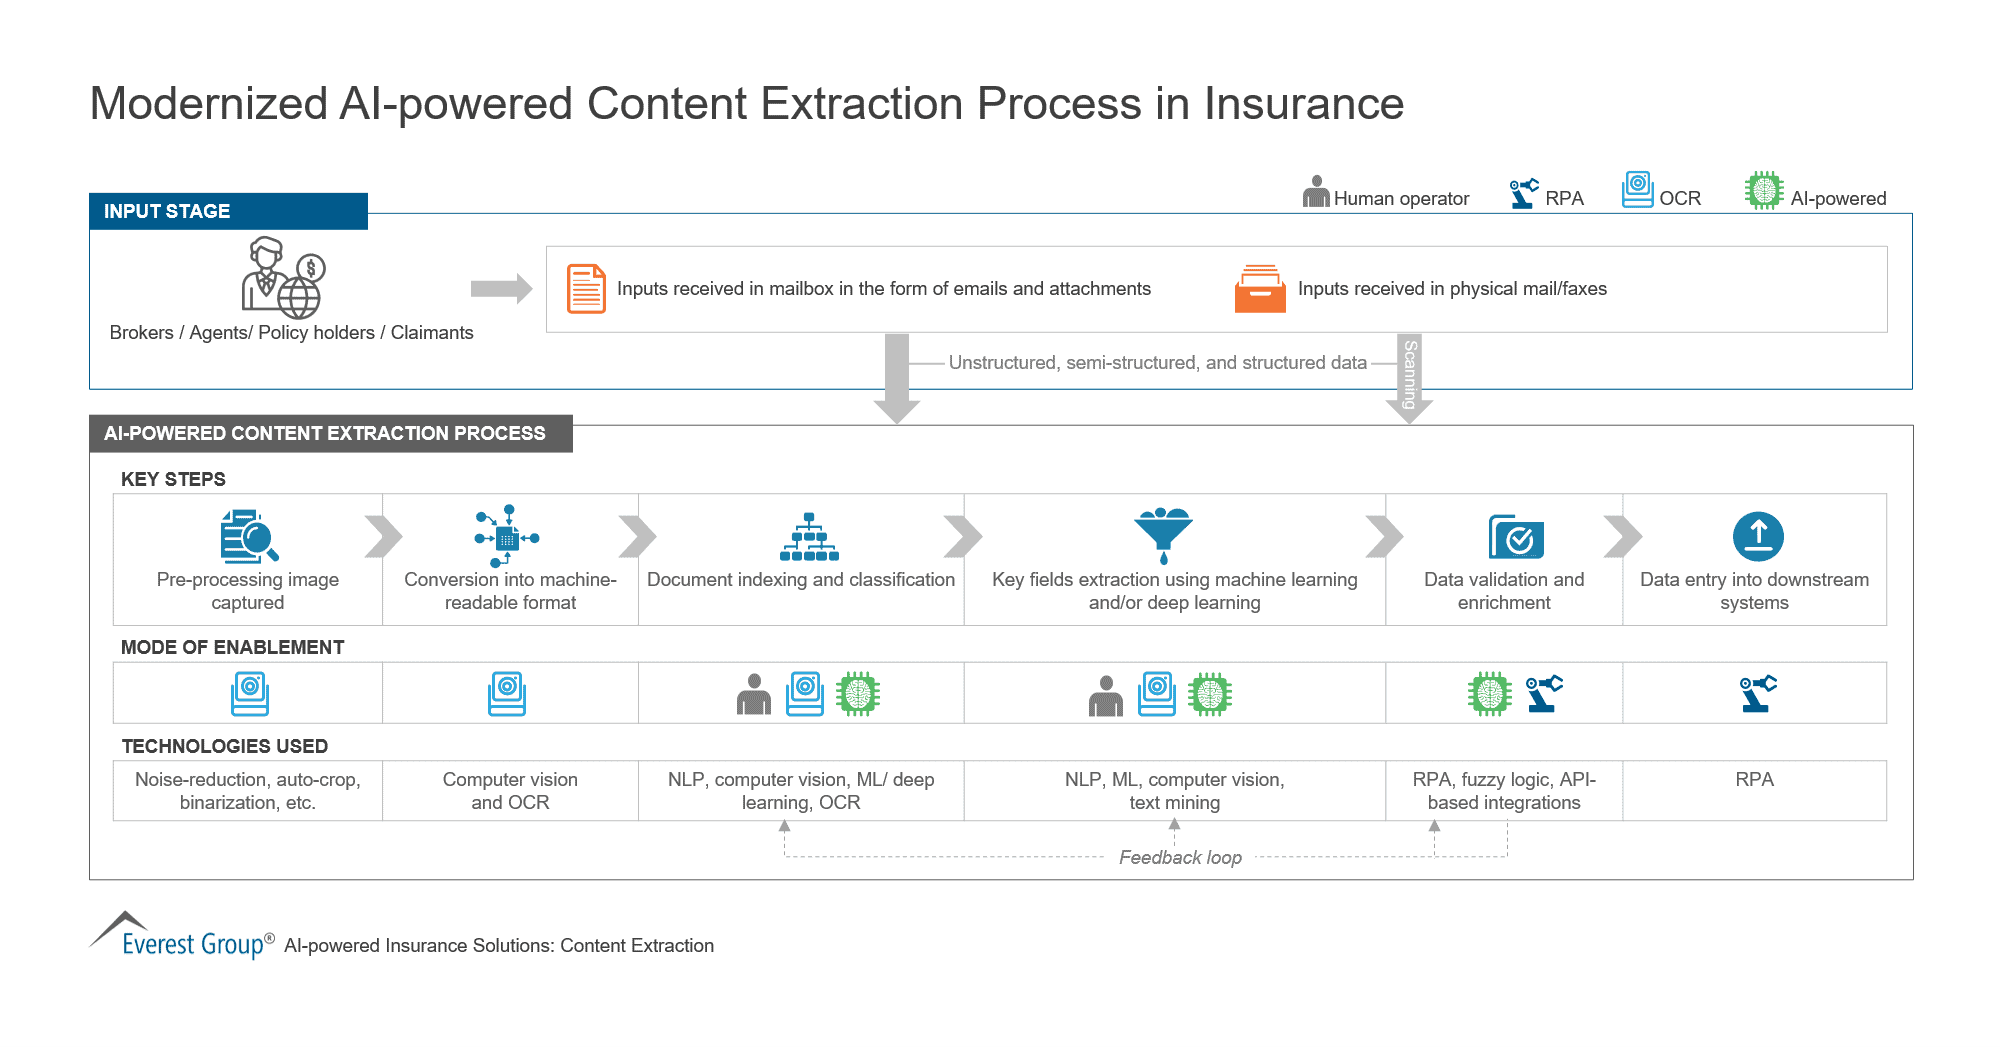 Modernized AI-powered Content Extraction Process in Insurance